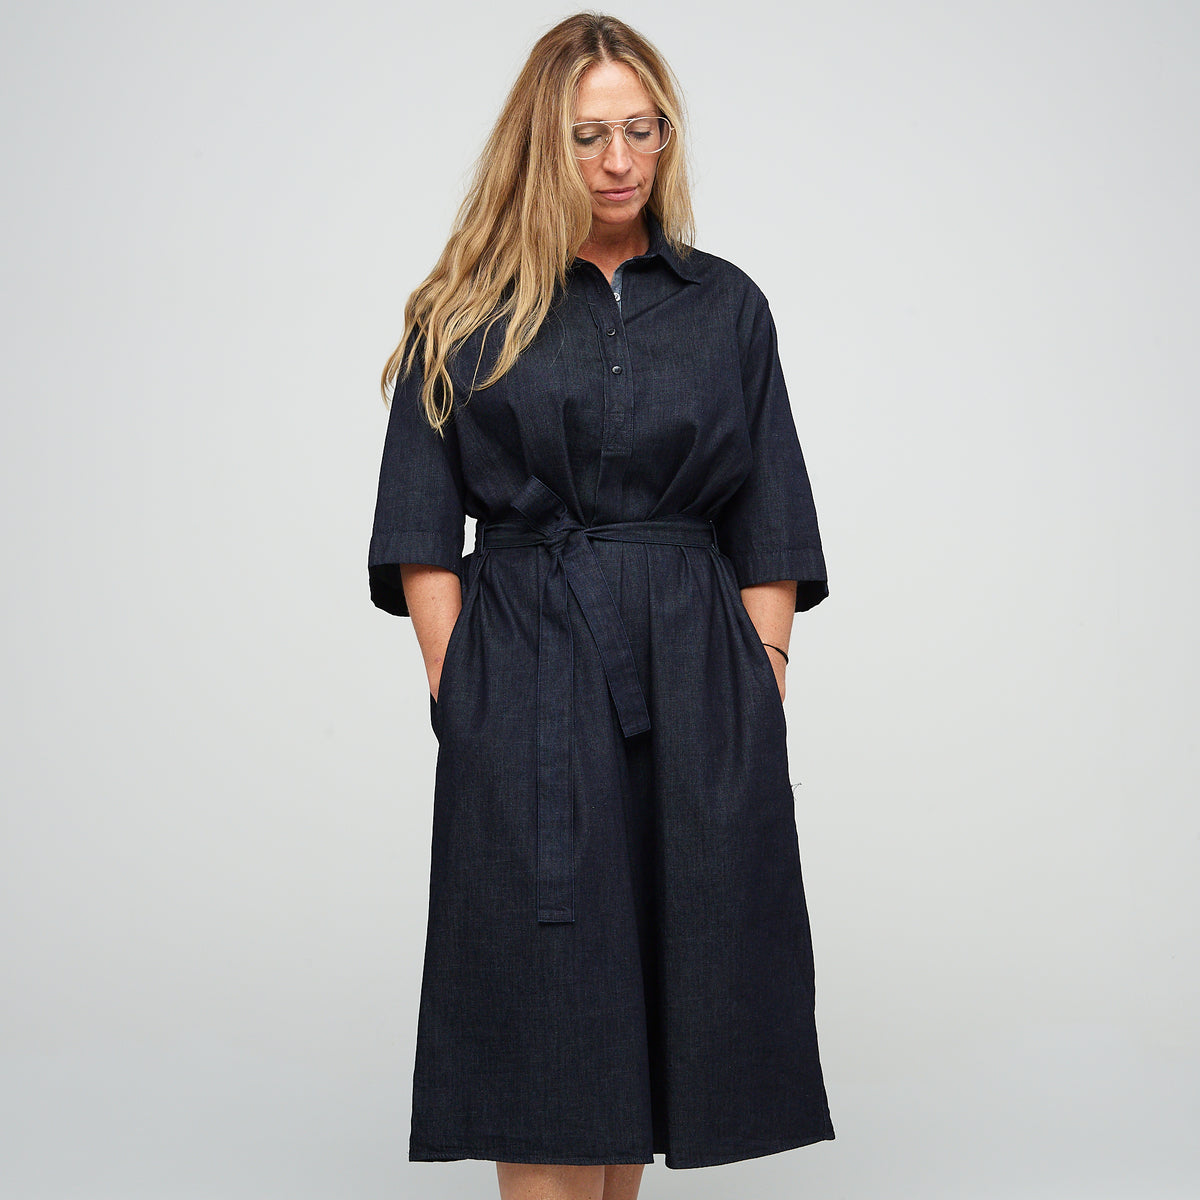 Denim Dress - Straight - Indigo Denim - Community Clothing